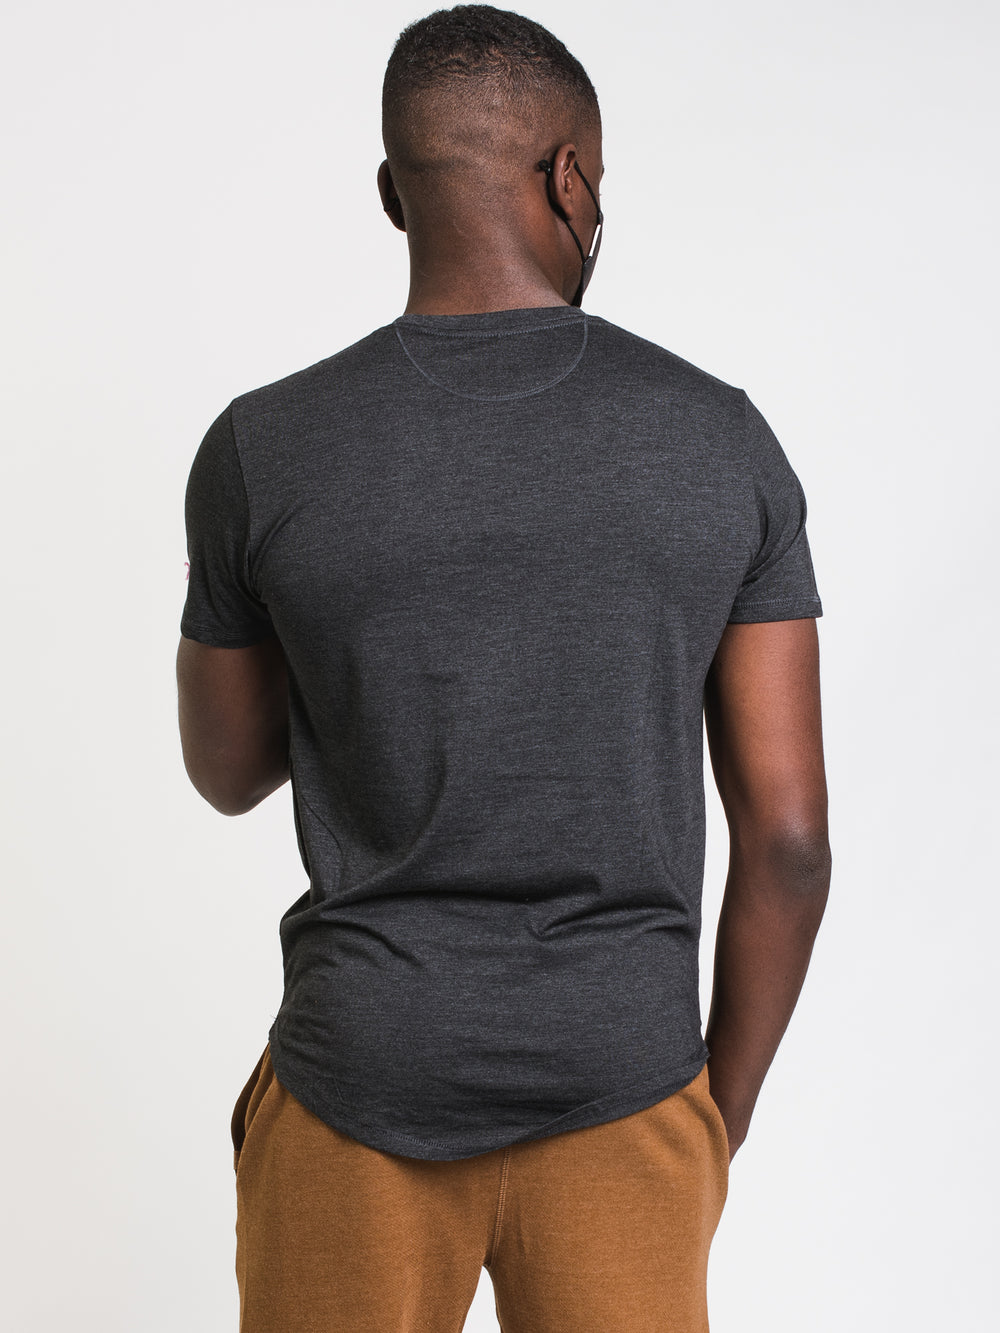 MENS SPRUCED UP LOGO SHORT SLEEVE TEE - BLACK